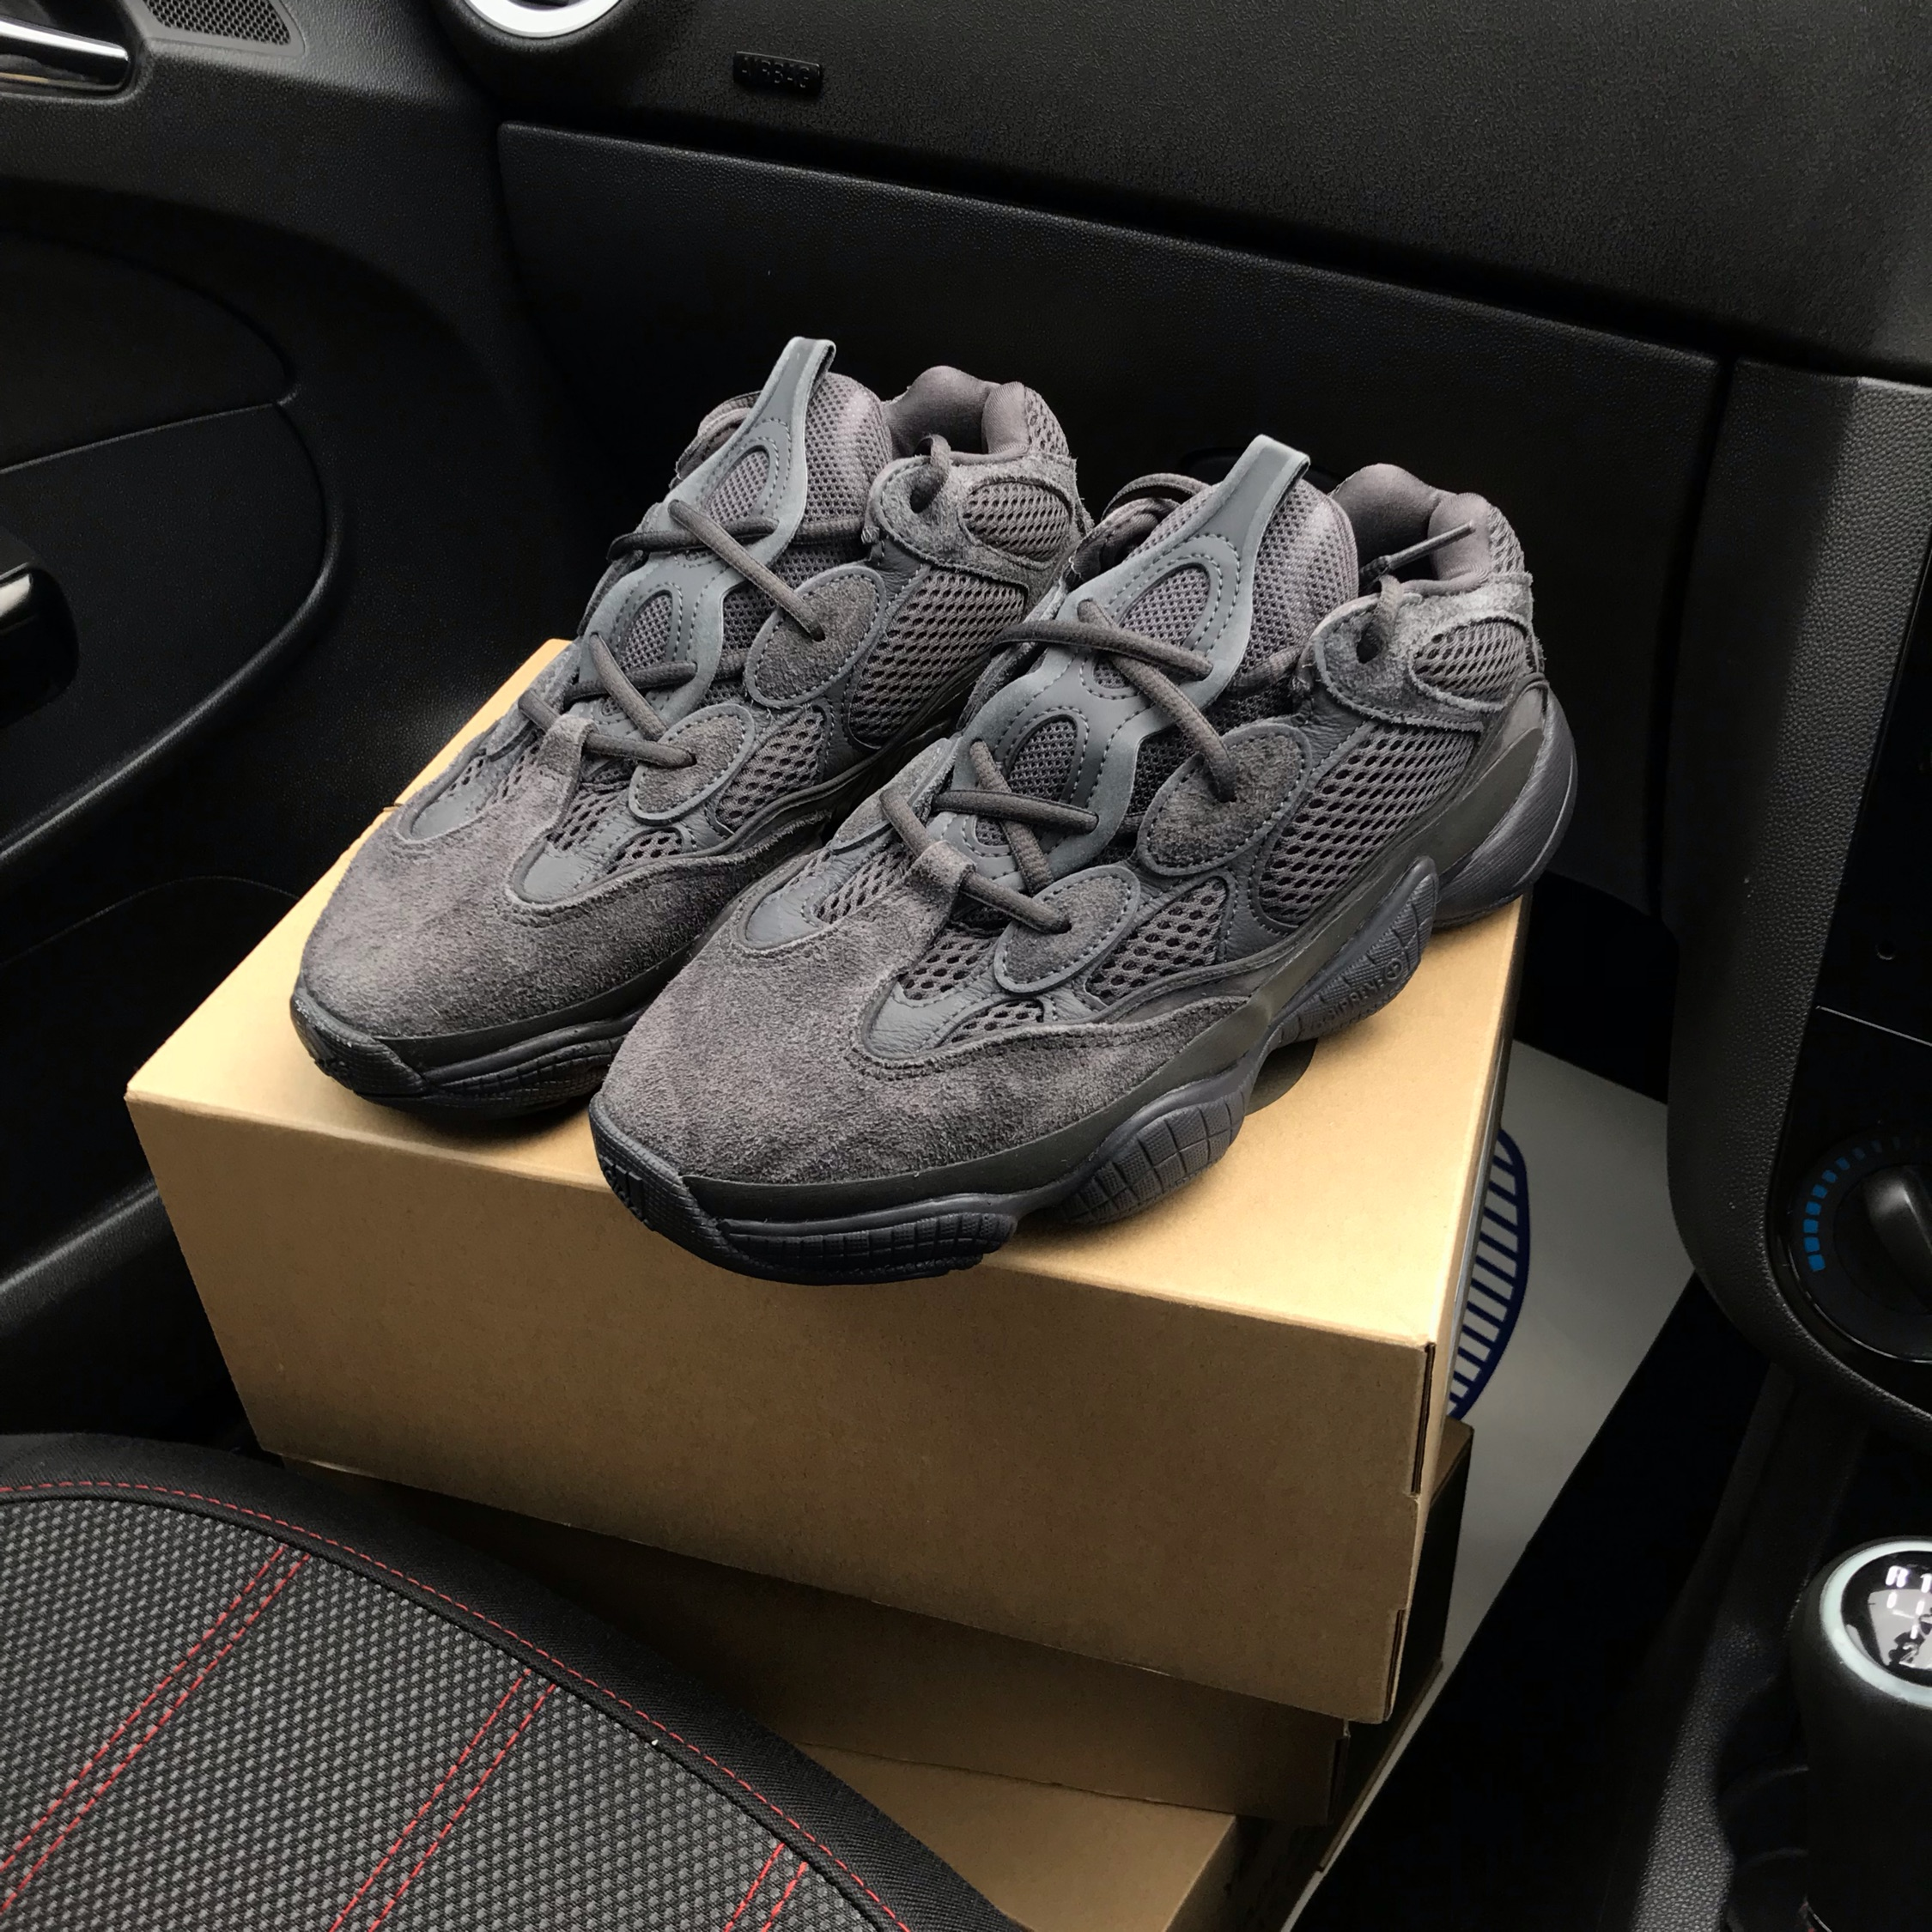 buy cheap 863f2 cd2c5 Adidas Yeezy 500 Utility Black Uk8 In Hand